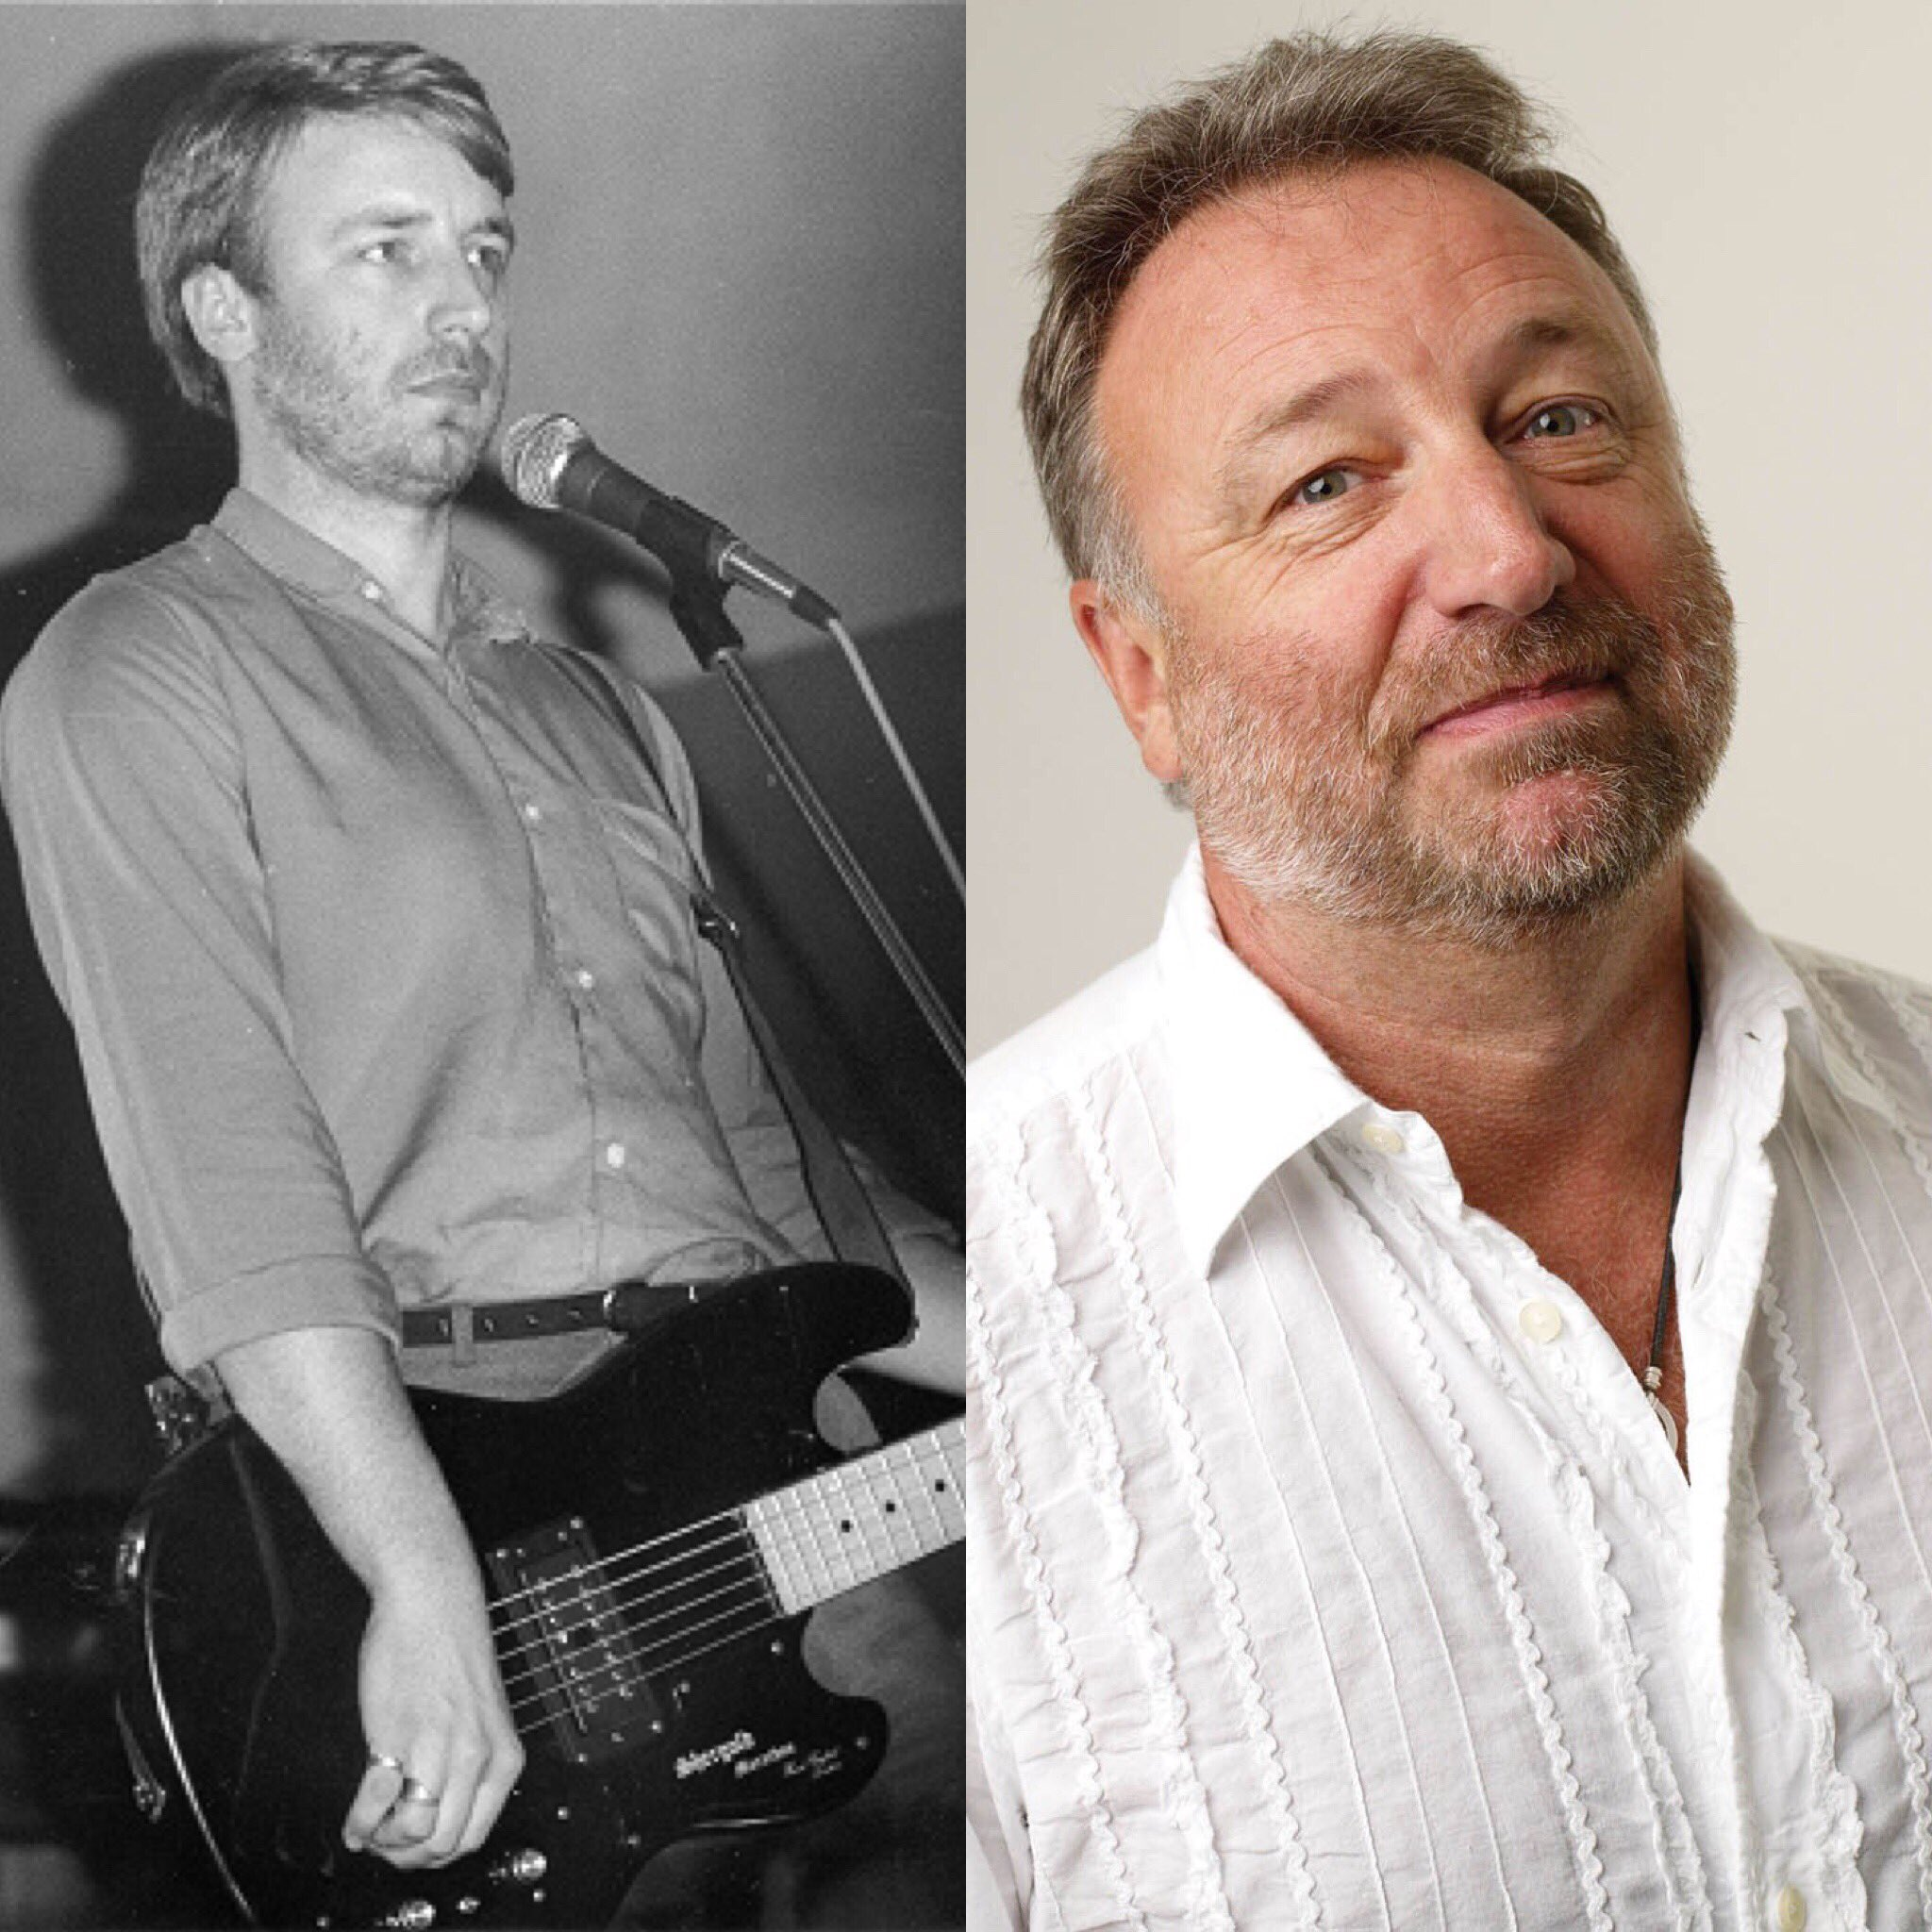 Happy 61st Birthday to Peter Hook, bassist and co-founder of Joy Division and New Order!!